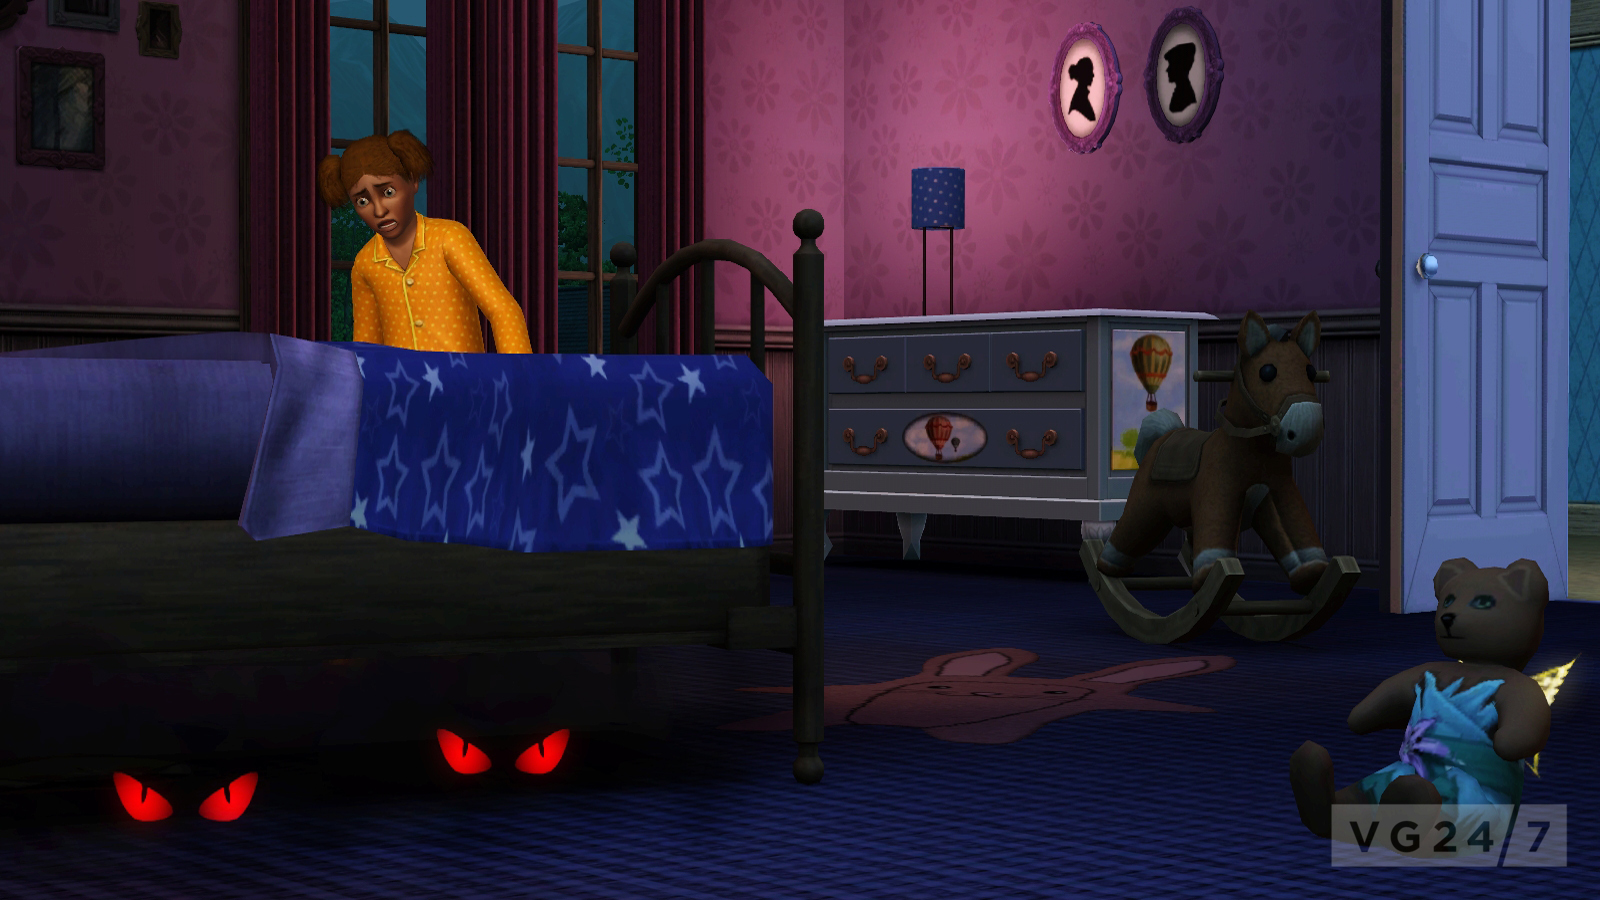 The Sims 3 Supernatural Magically Lands On Pc Today Vg247